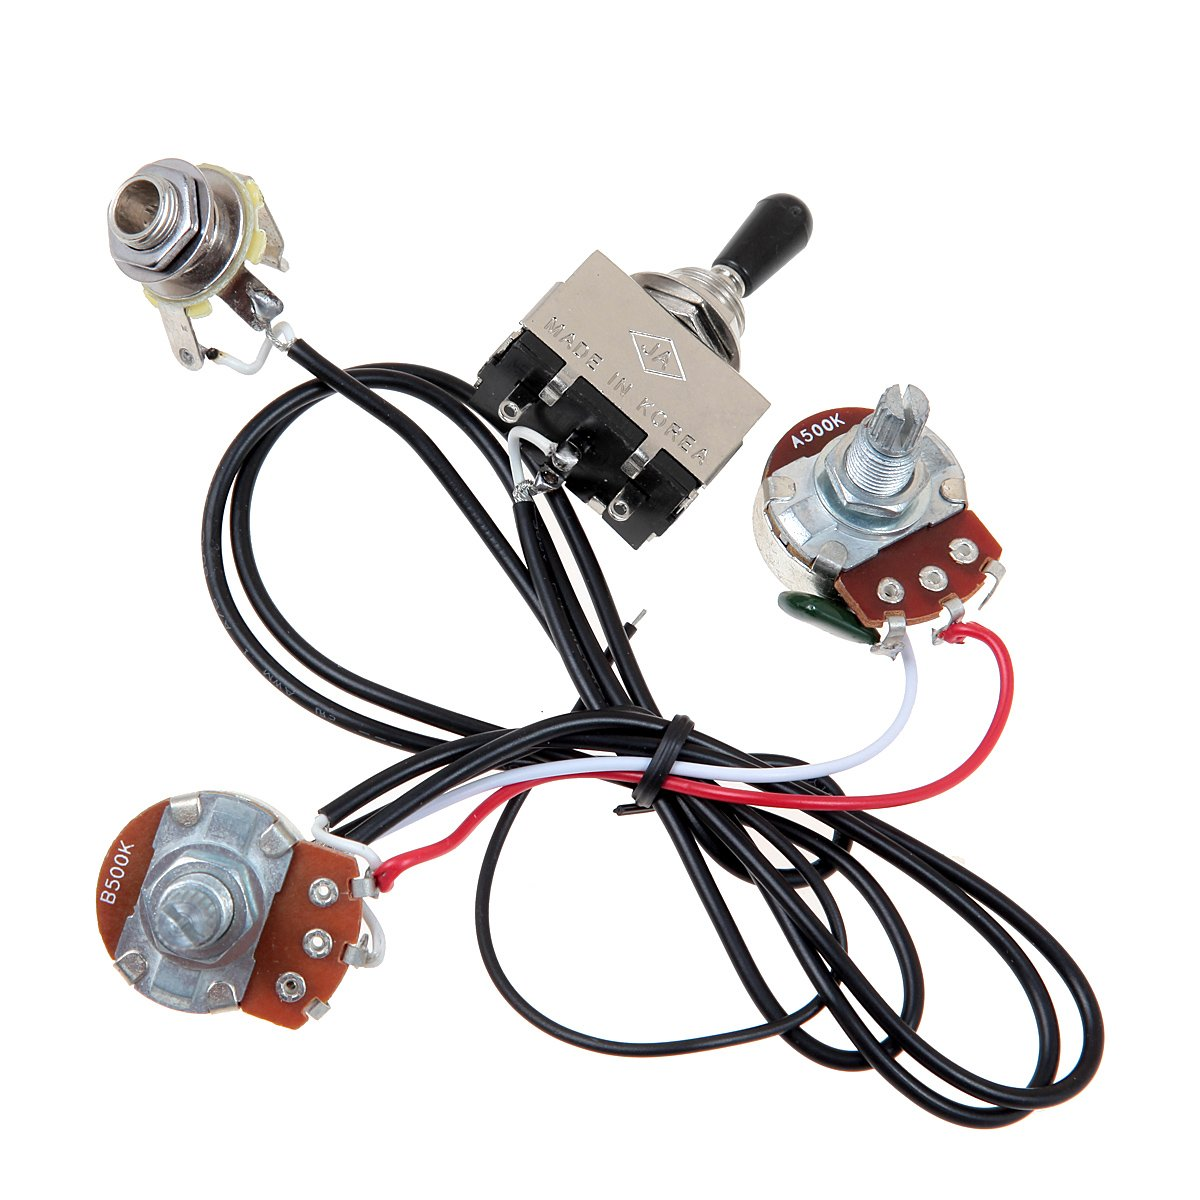 71%2BaA7TOd1L._SL1200_ amazon com kmise mi0321 guitar wiring harness prewired two pickup guitar wiring harness at readyjetset.co